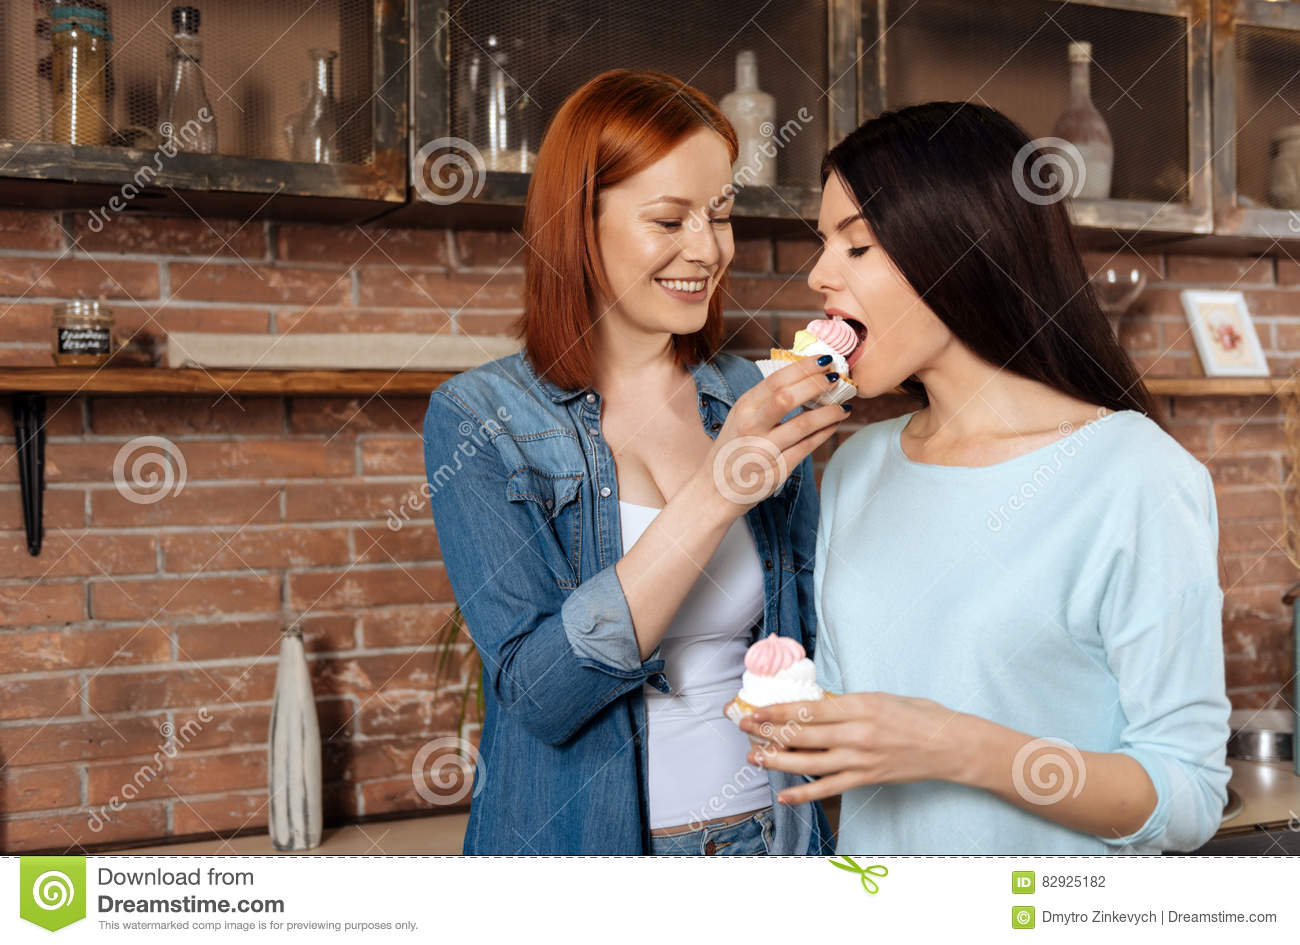 Red haired women wearing casual clothes feeding her girlfriend with dessert  that keeping her eyes closed